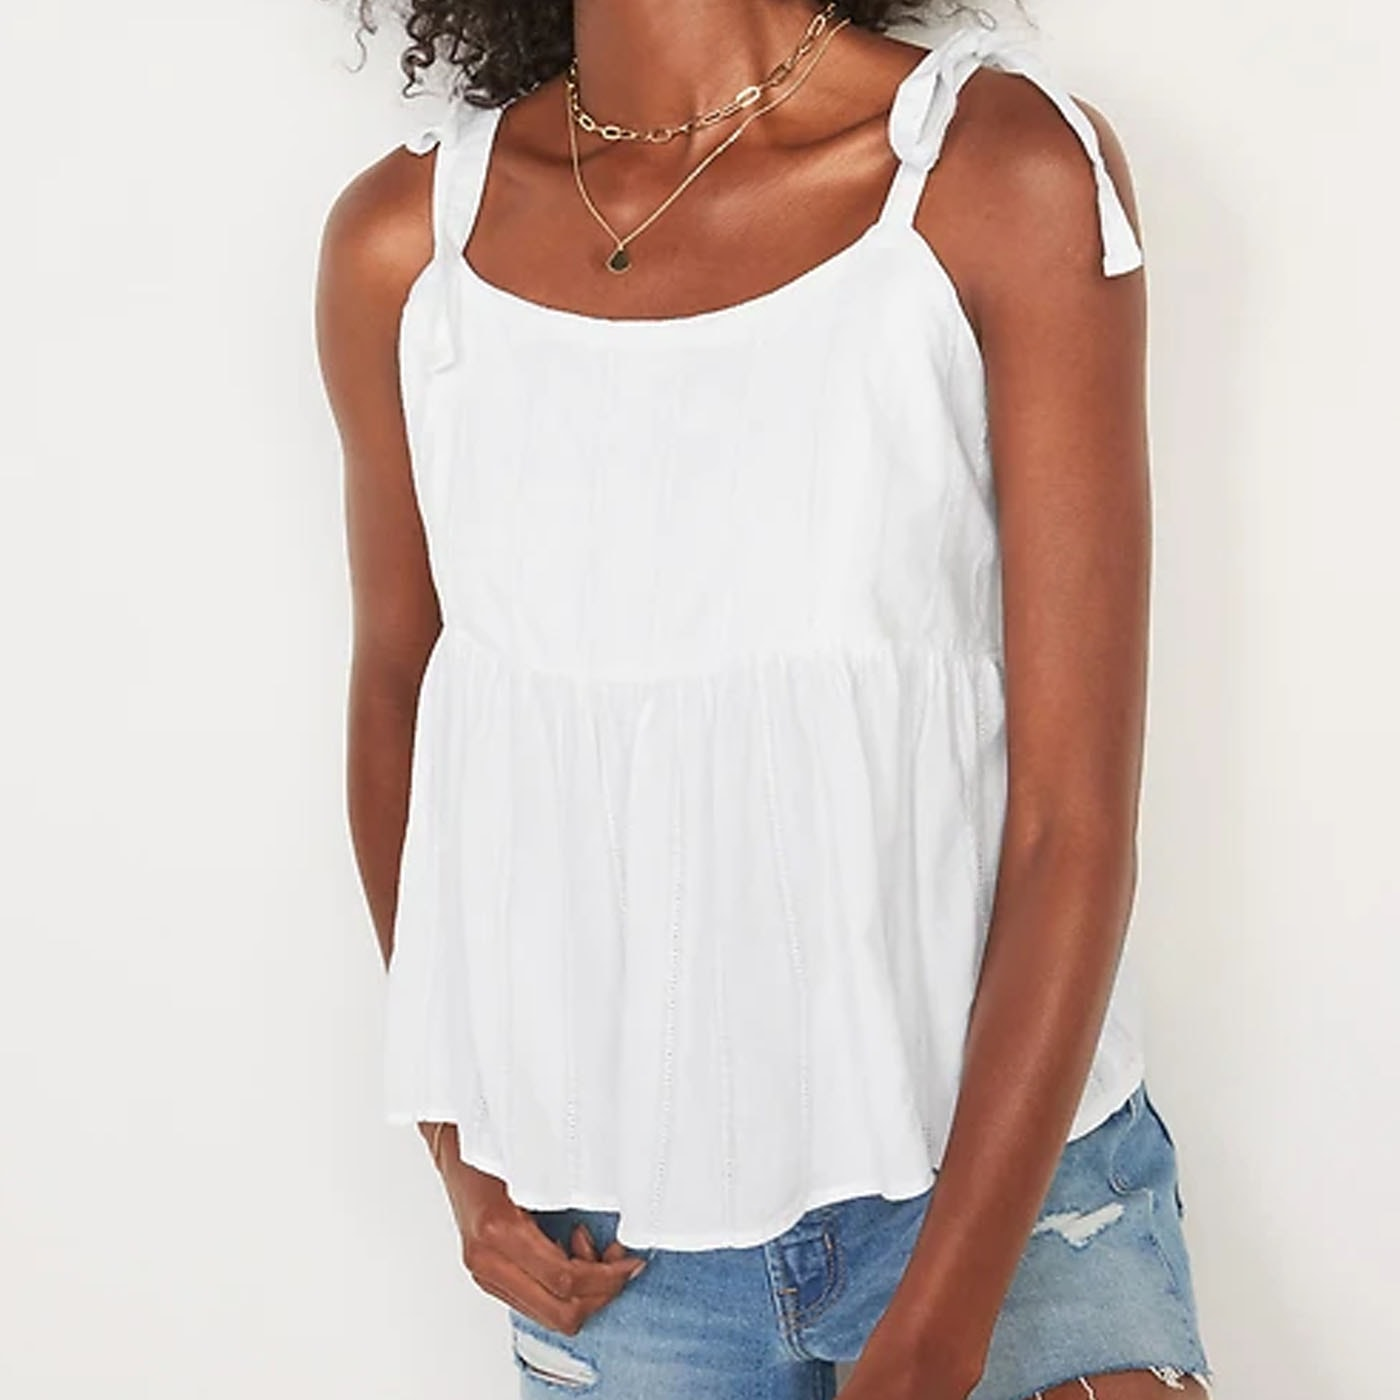 This white babydoll tank top is under $30 and perfect for summer! #ABlissfulNest